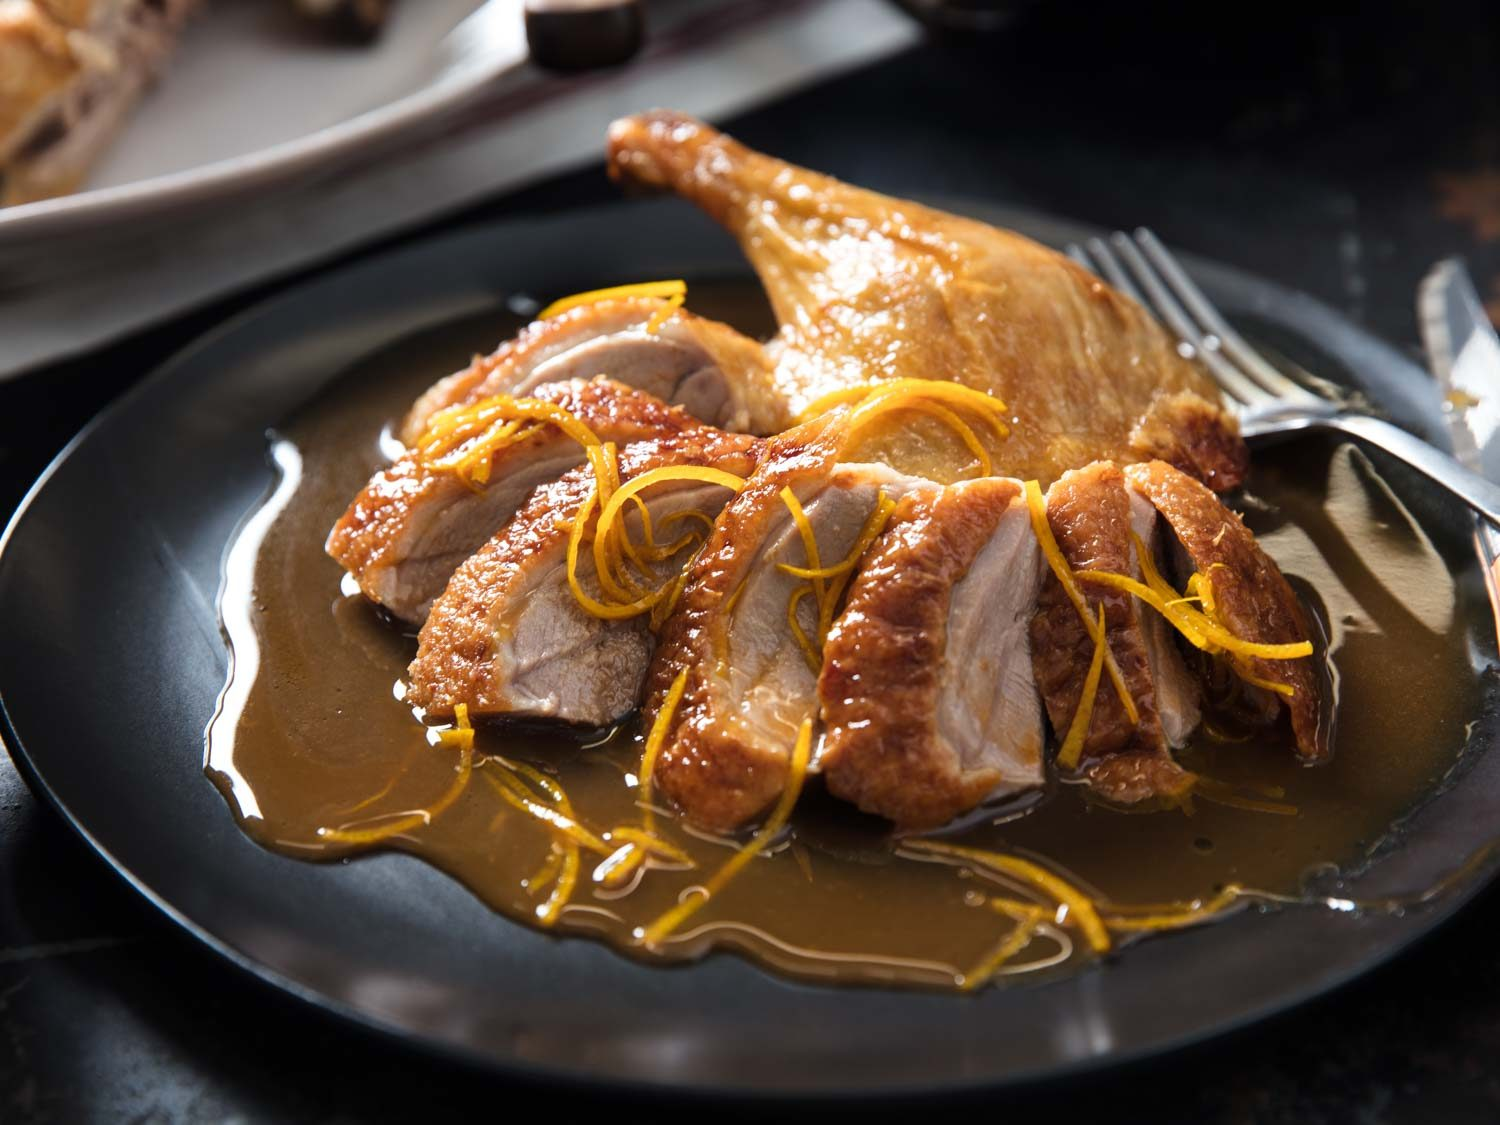 A plate of Duck à l'Orange with sauce